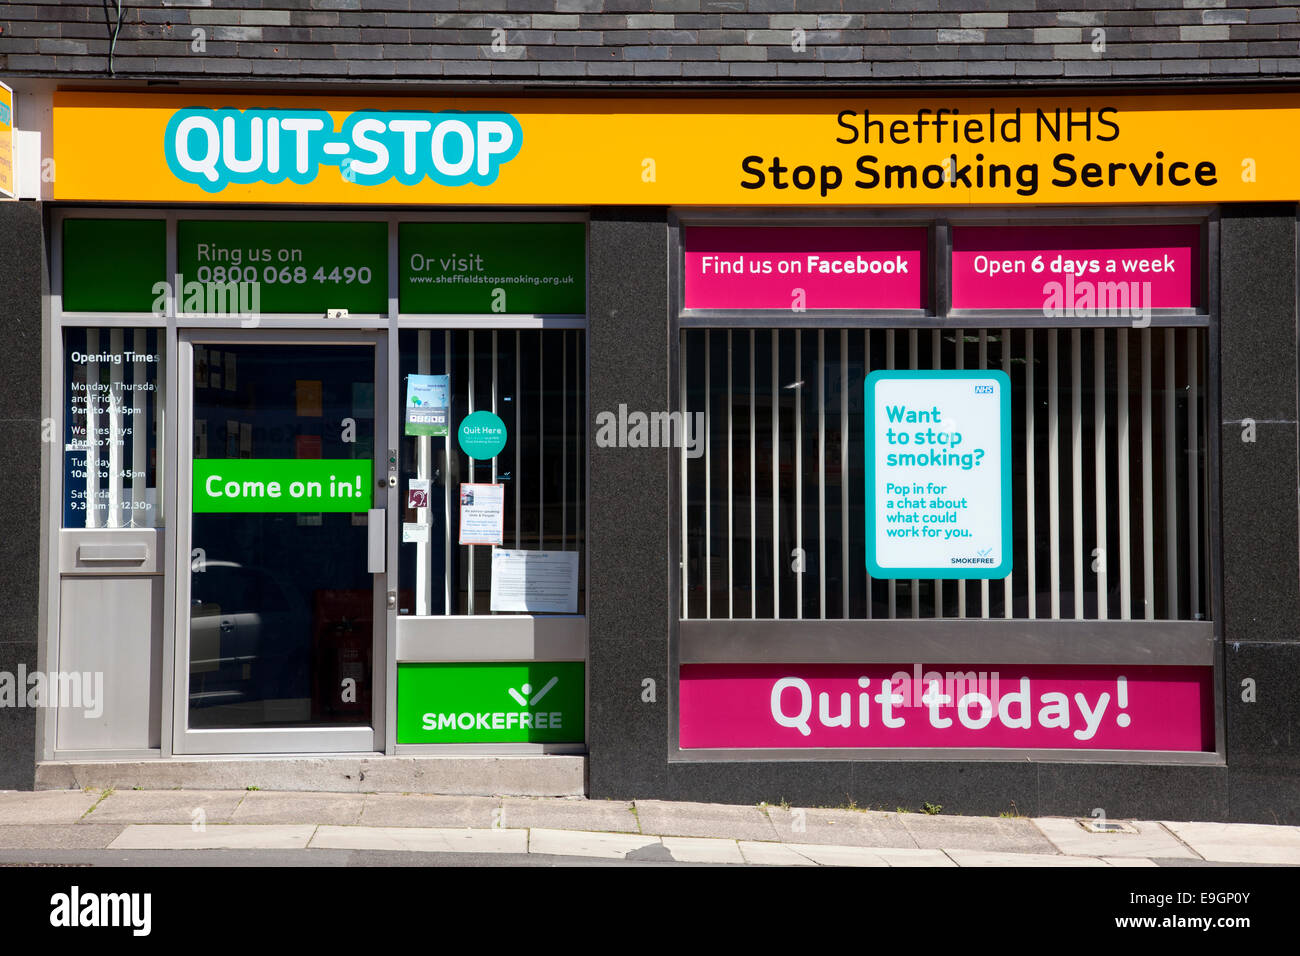 Quit-Stop, the Sheffield NHS Stop Smoking Service in Sheffield , South Yorkshire, England, U.K. - Stock Image